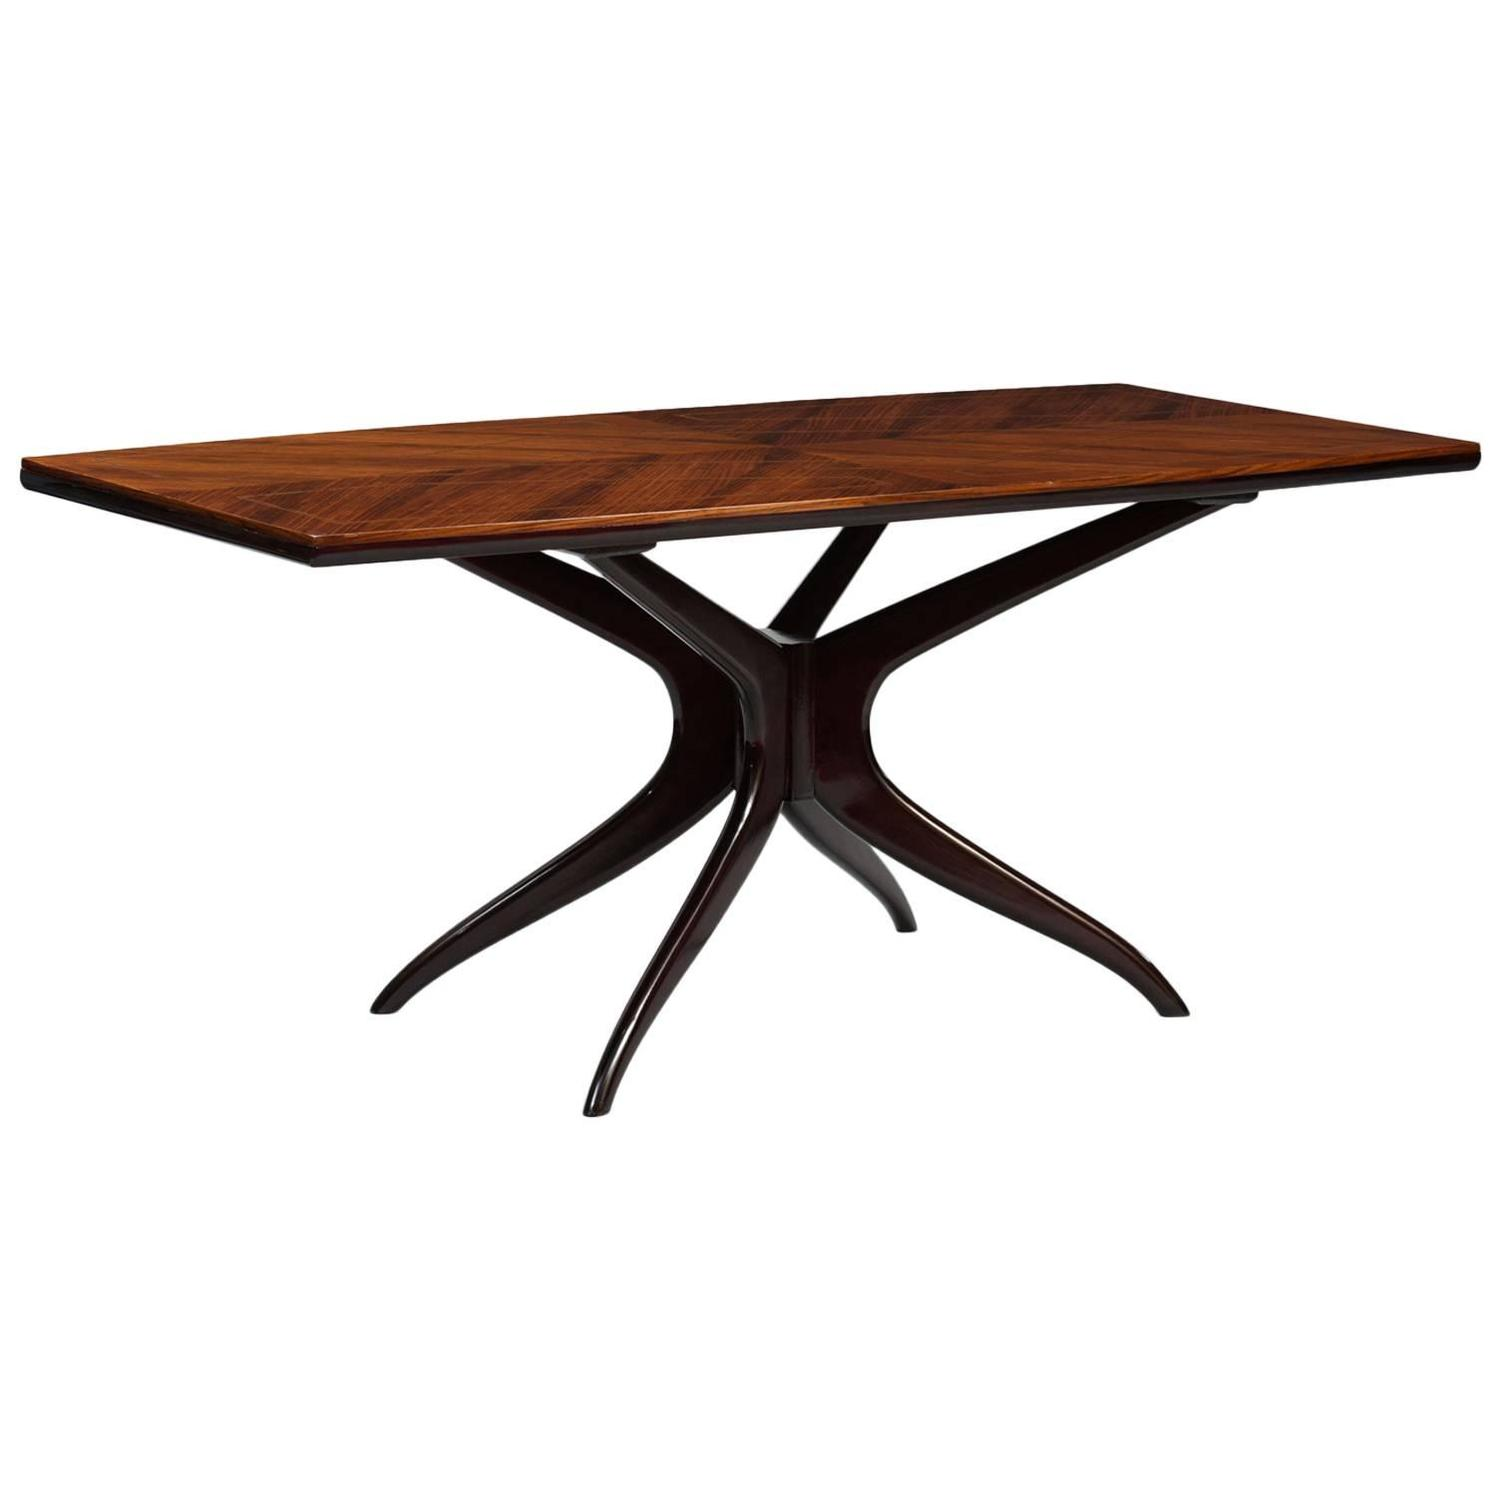 Italian dining table at 1stdibs for Italian dining table